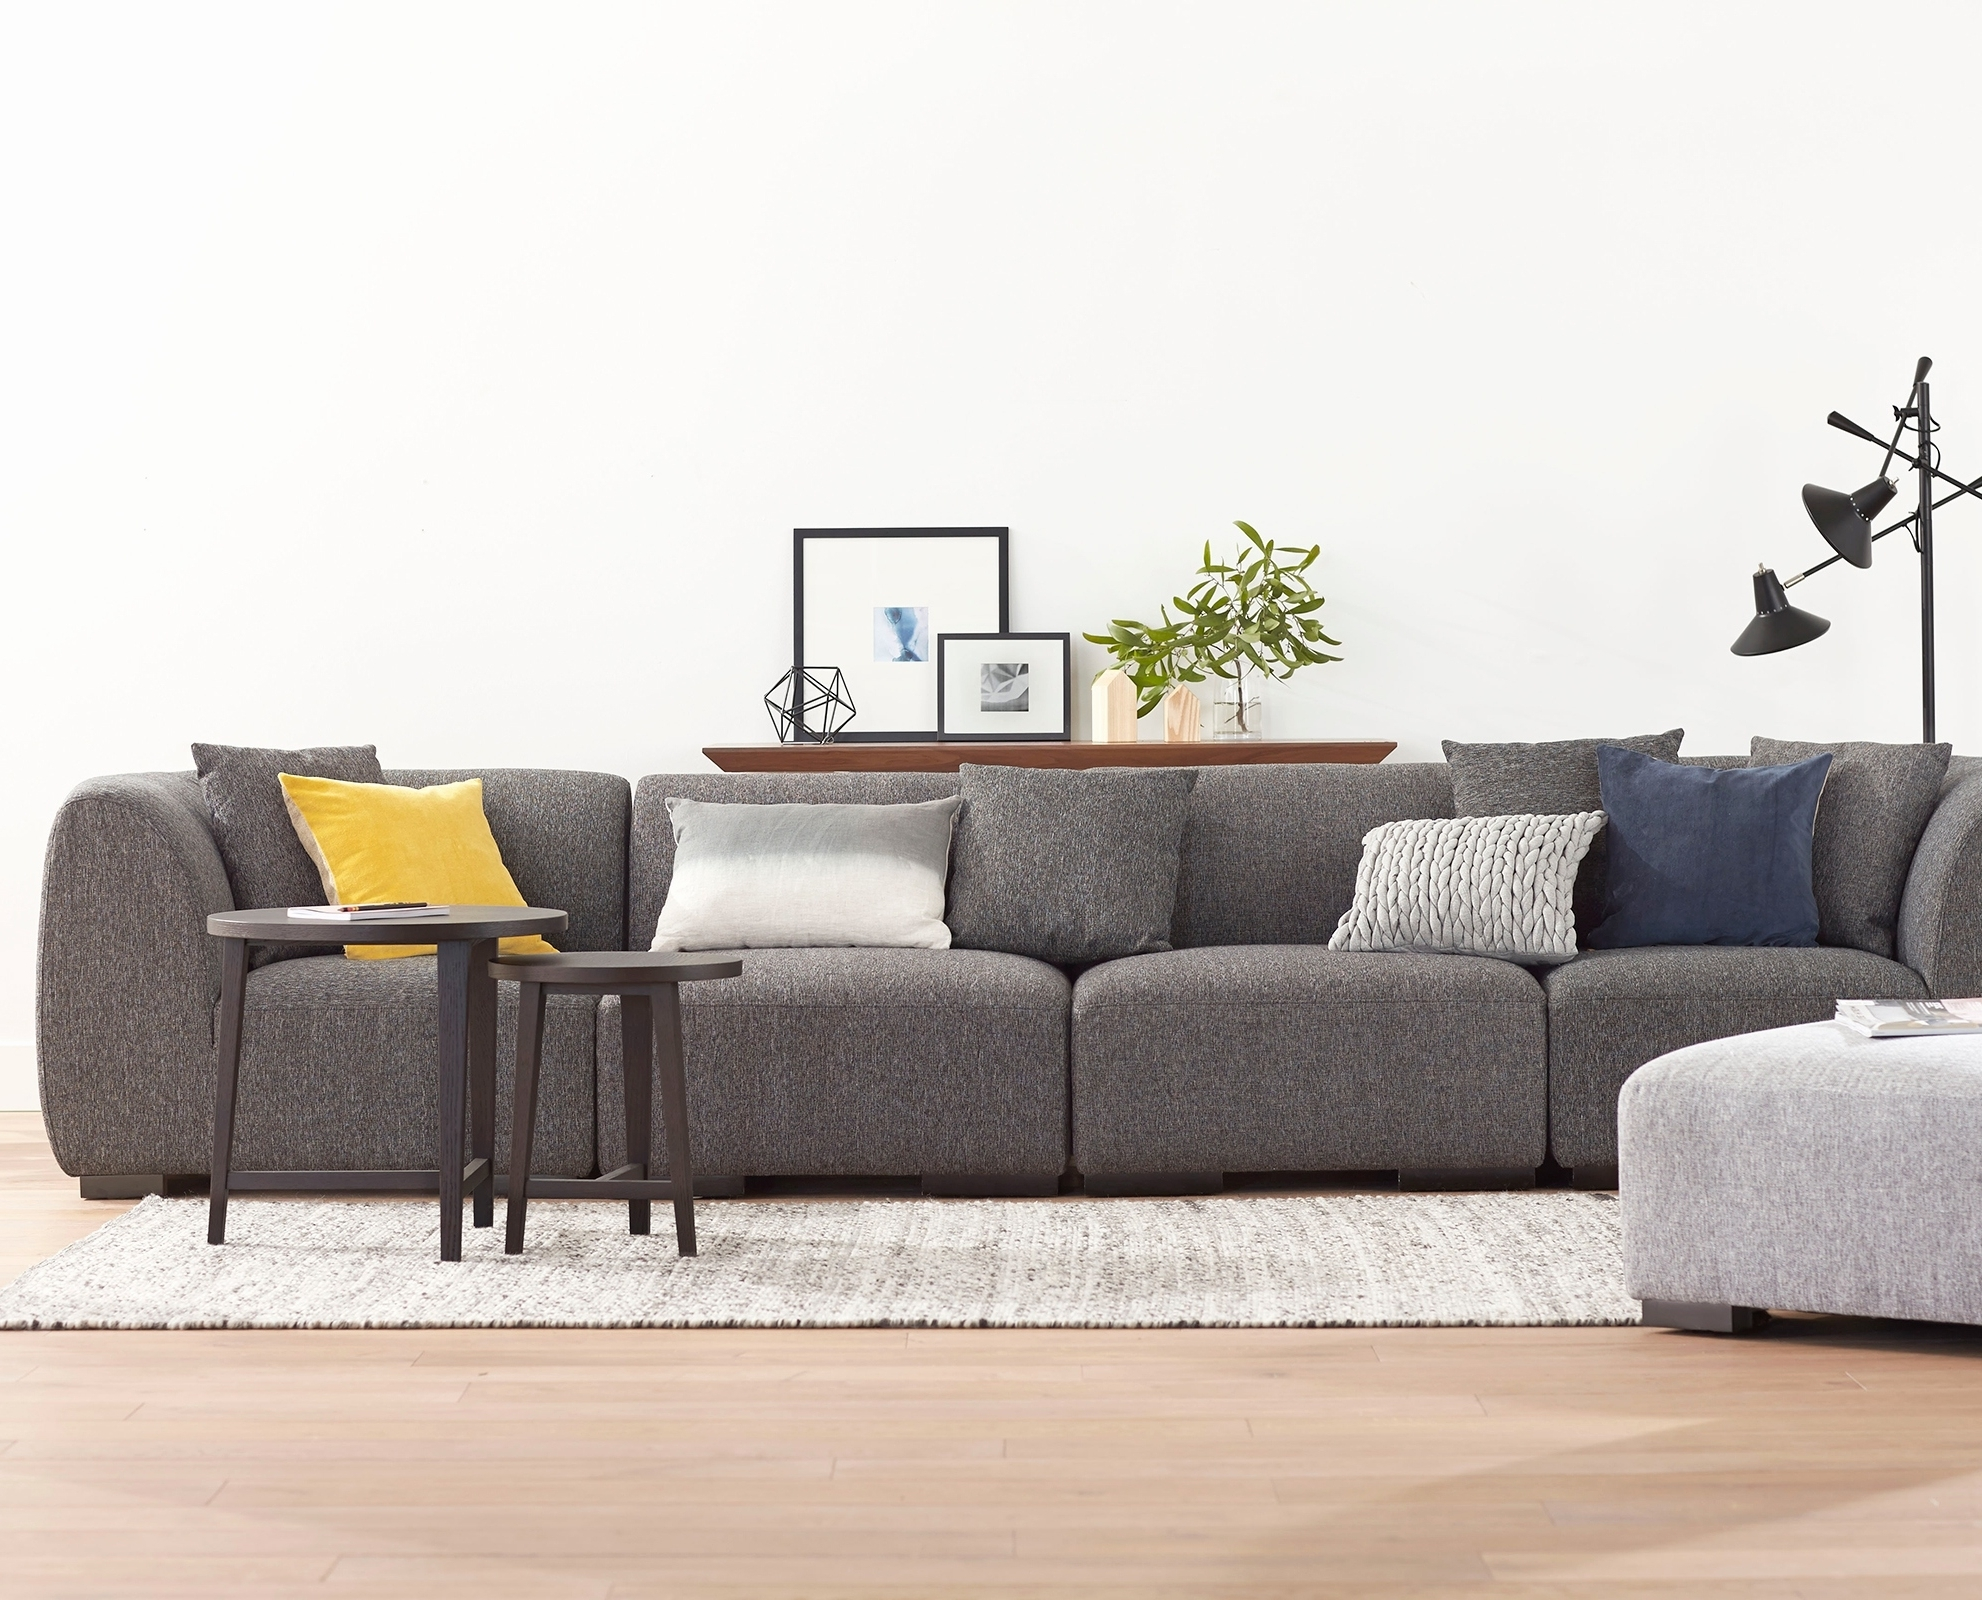 Canada Sectional Sofas For Small Spaces Throughout Fashionable Fresh Sectional Sofa Beds For Small Spaces 2018 – Couches And (View 10 of 20)